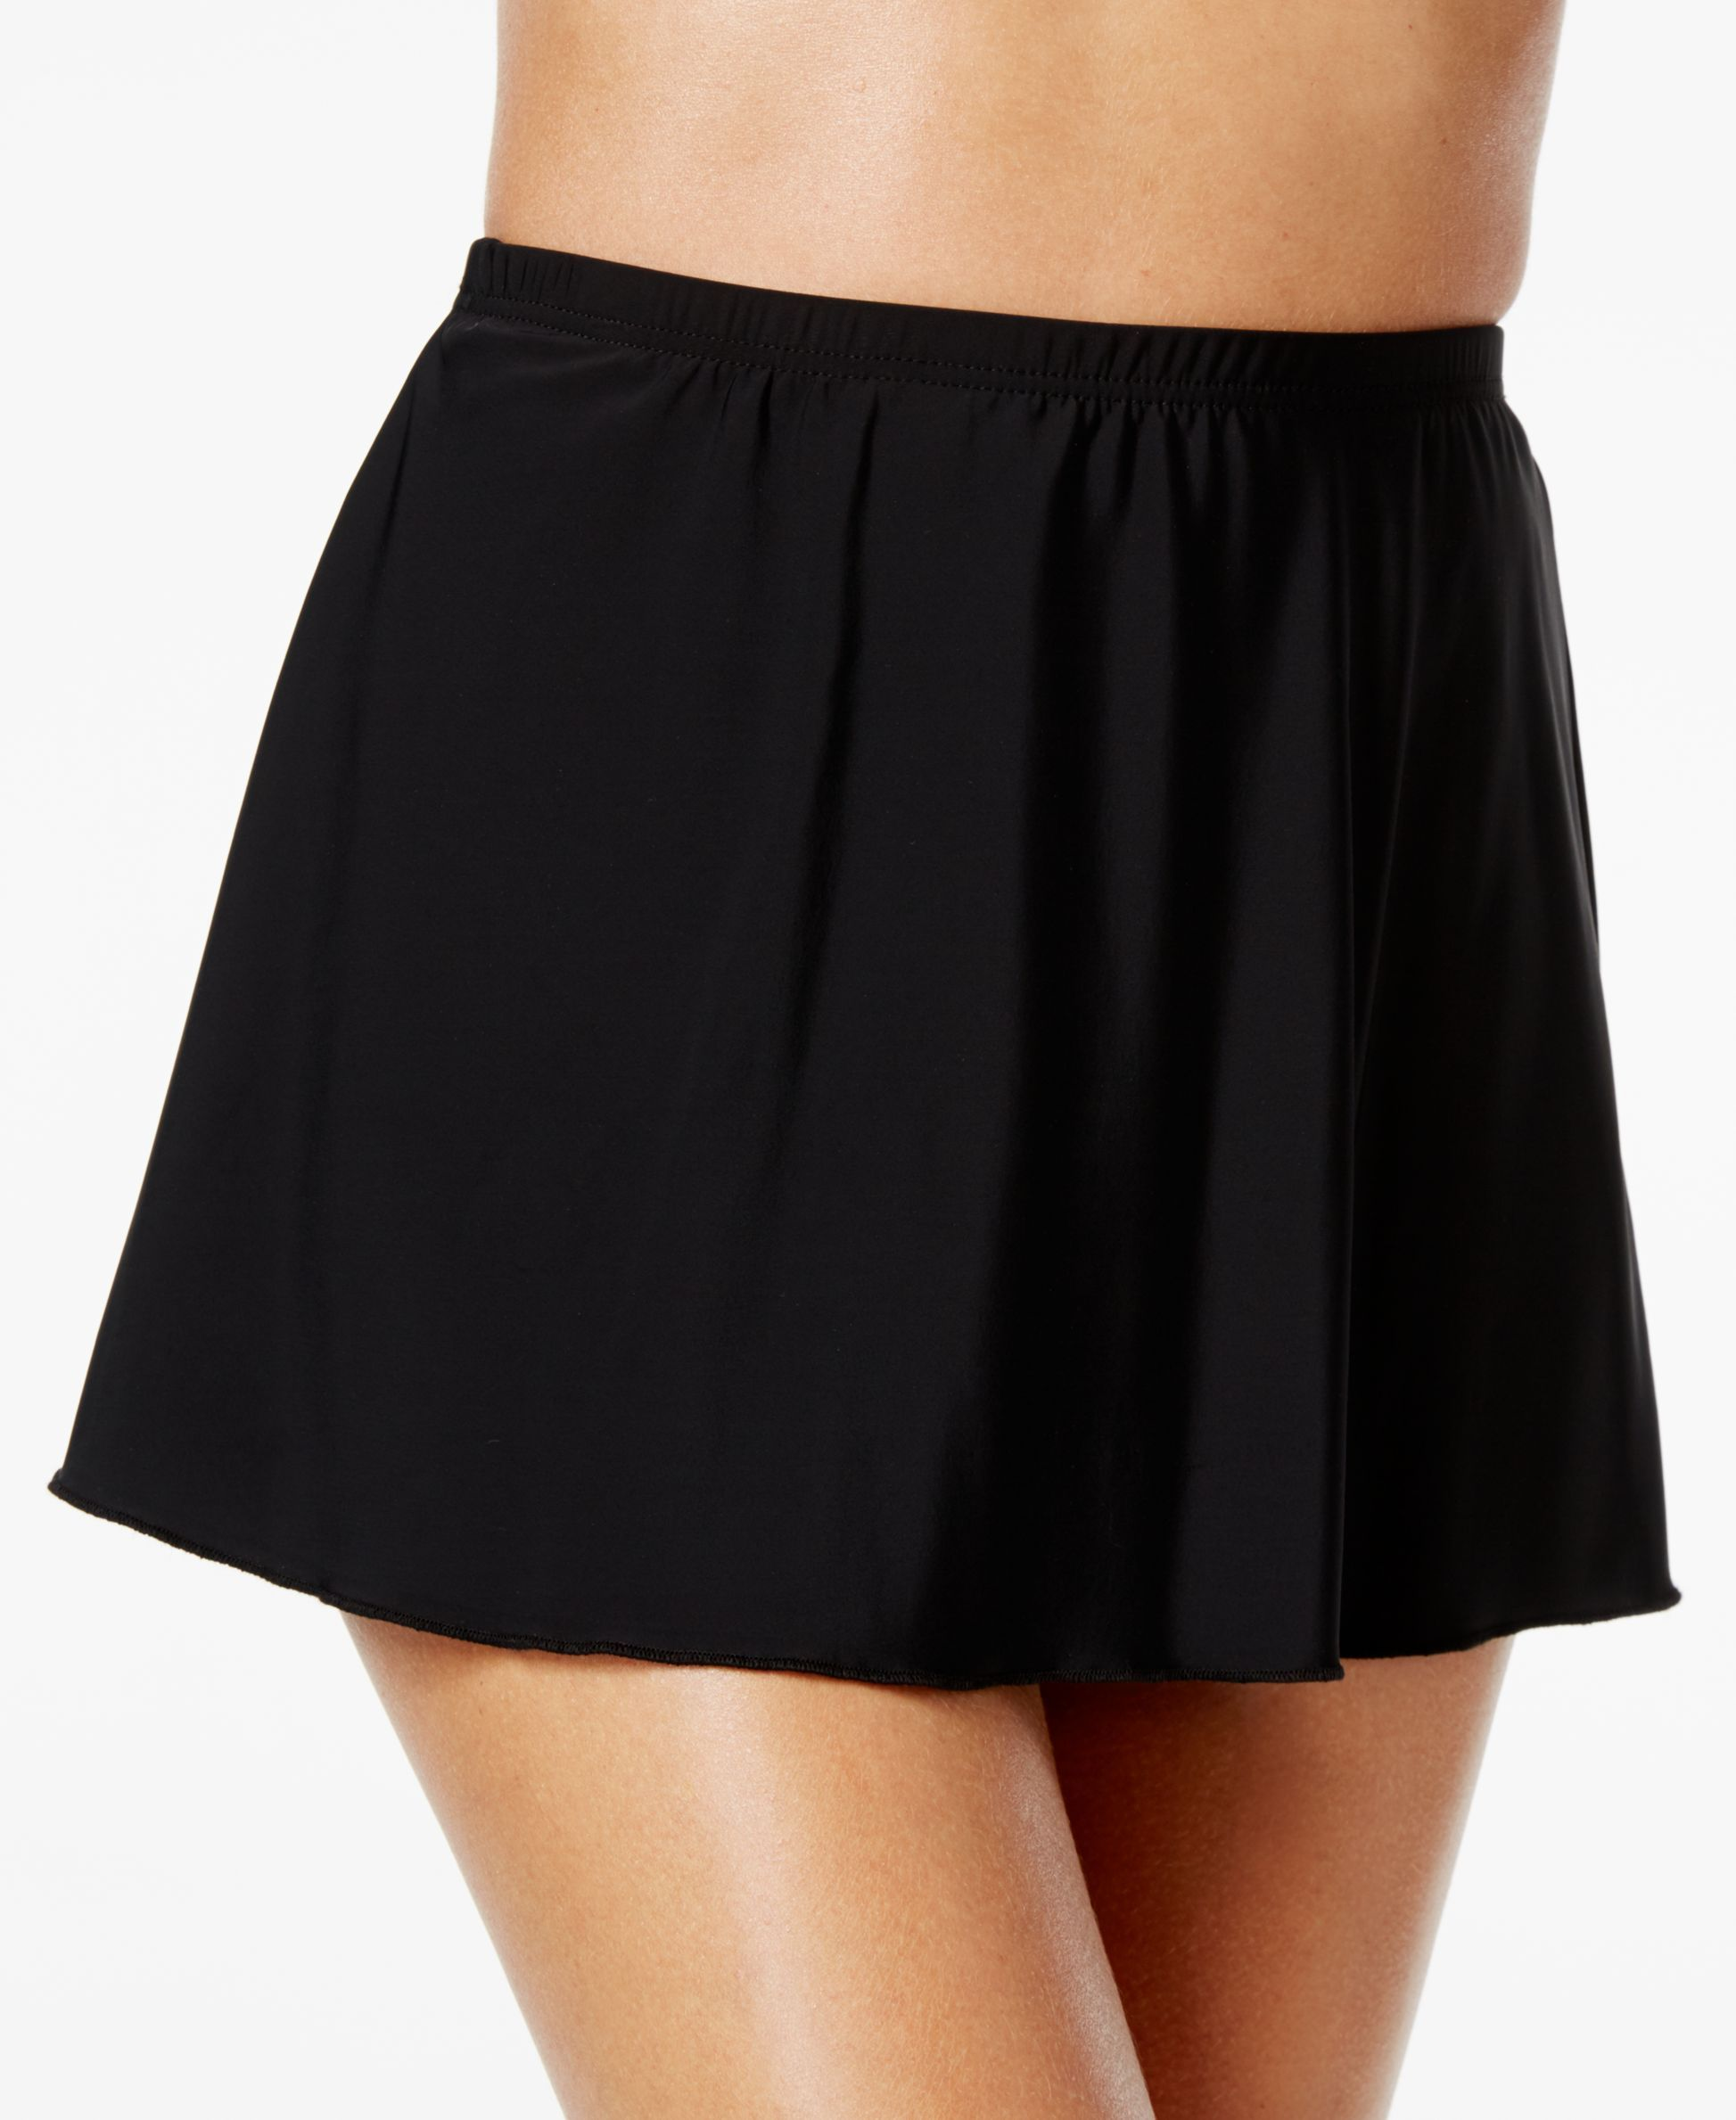 up-to-datestyling available genuine Miraclesuit High-Waist Tummy Control Swim Skirt   Fashion ...